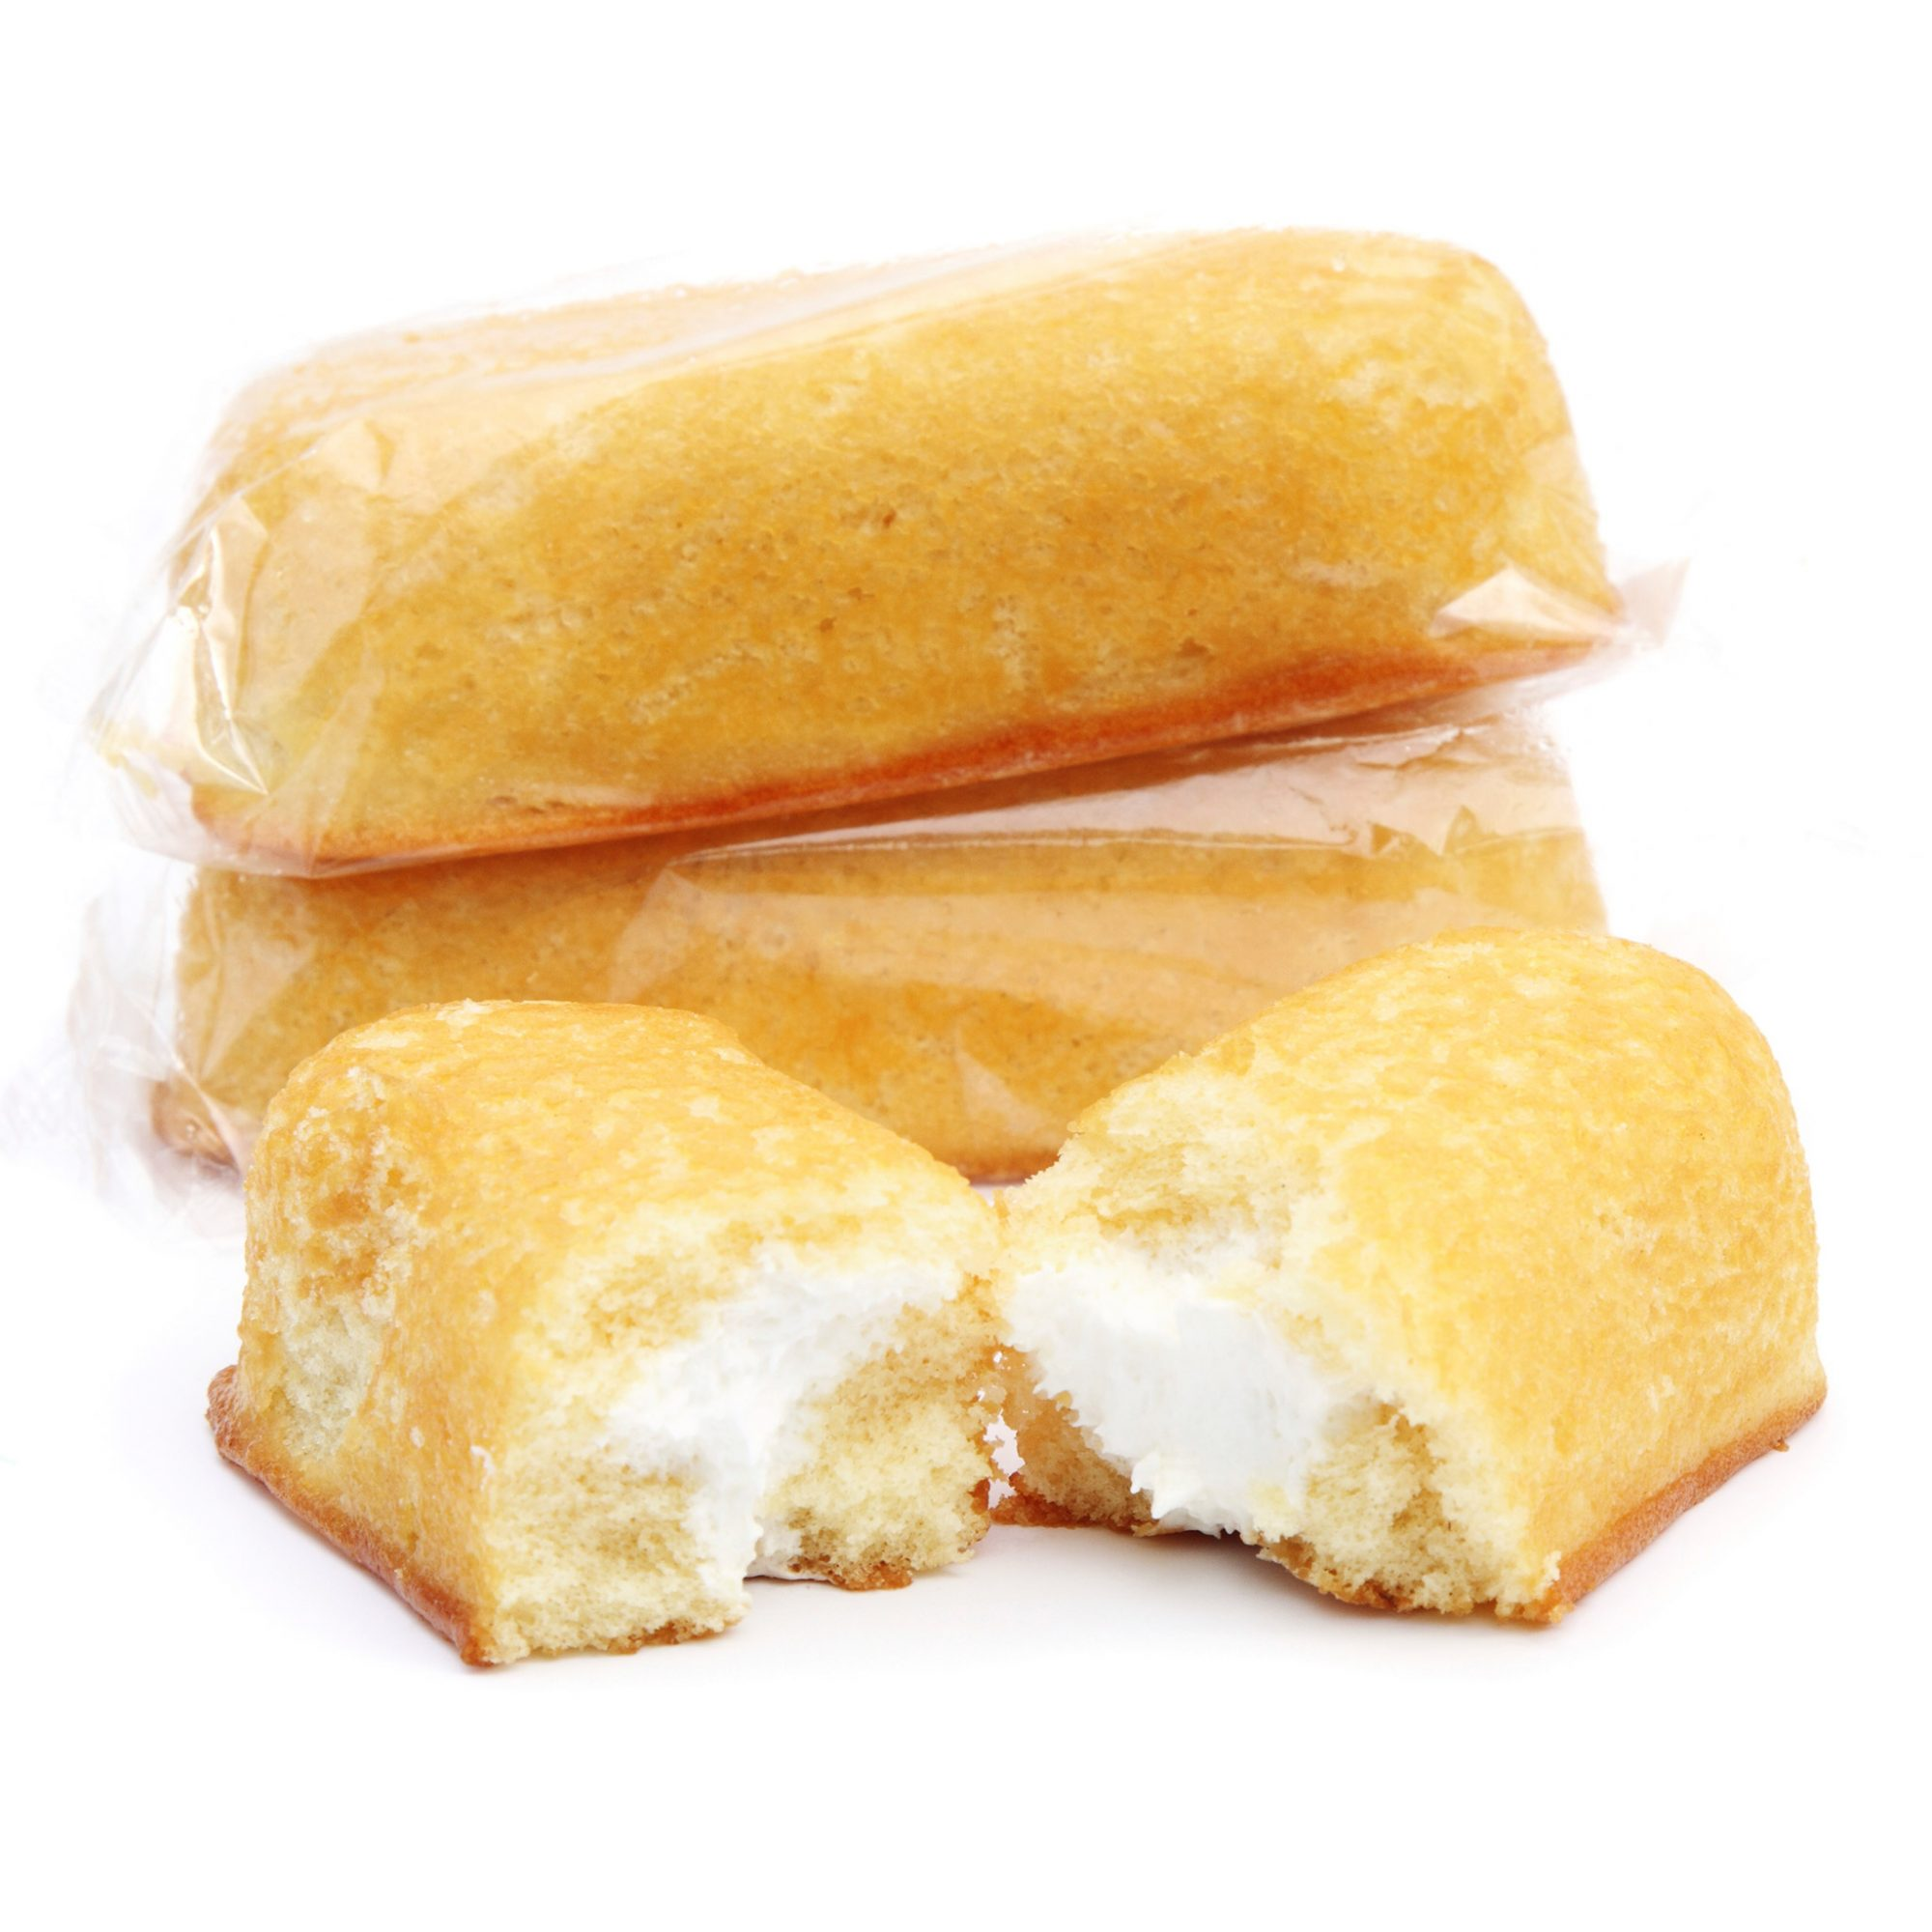 FWX COMPANY THAT WILL MAKE A HEALTHIER TWINKIE